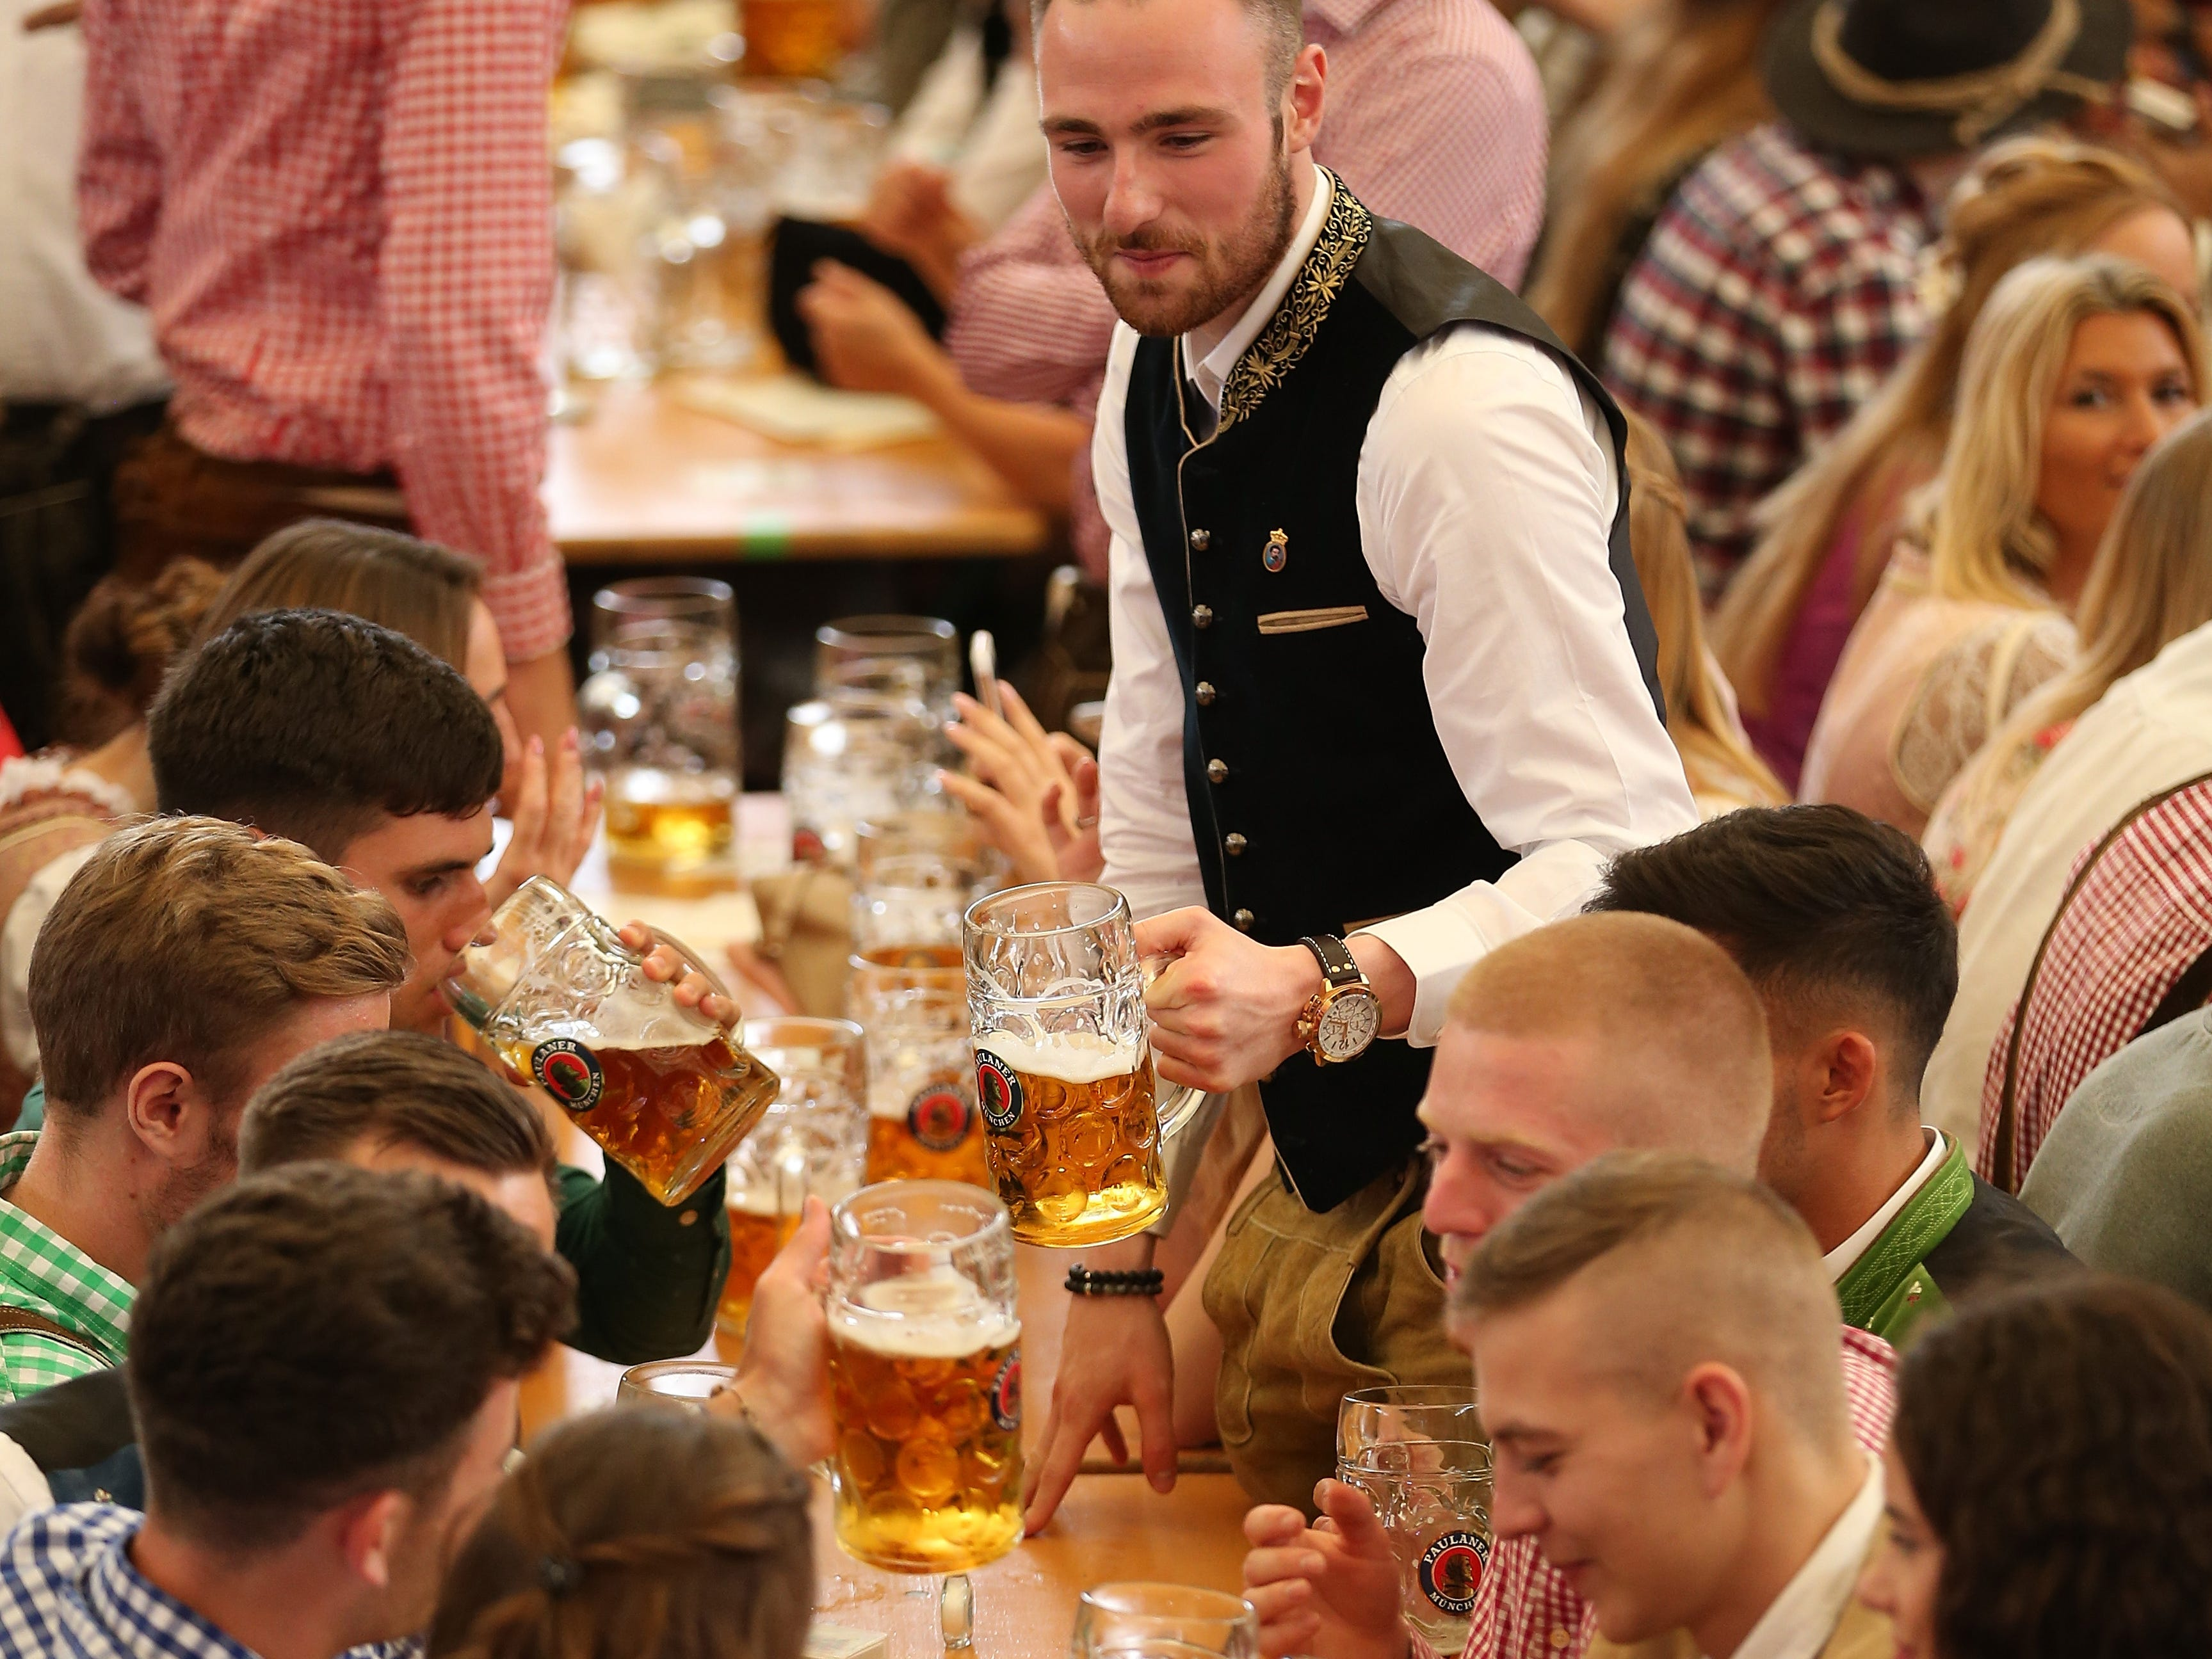 Revelers celebrate in the Paulaner tent shortly after the official opening of the 2018 Oktoberfest beer festival.